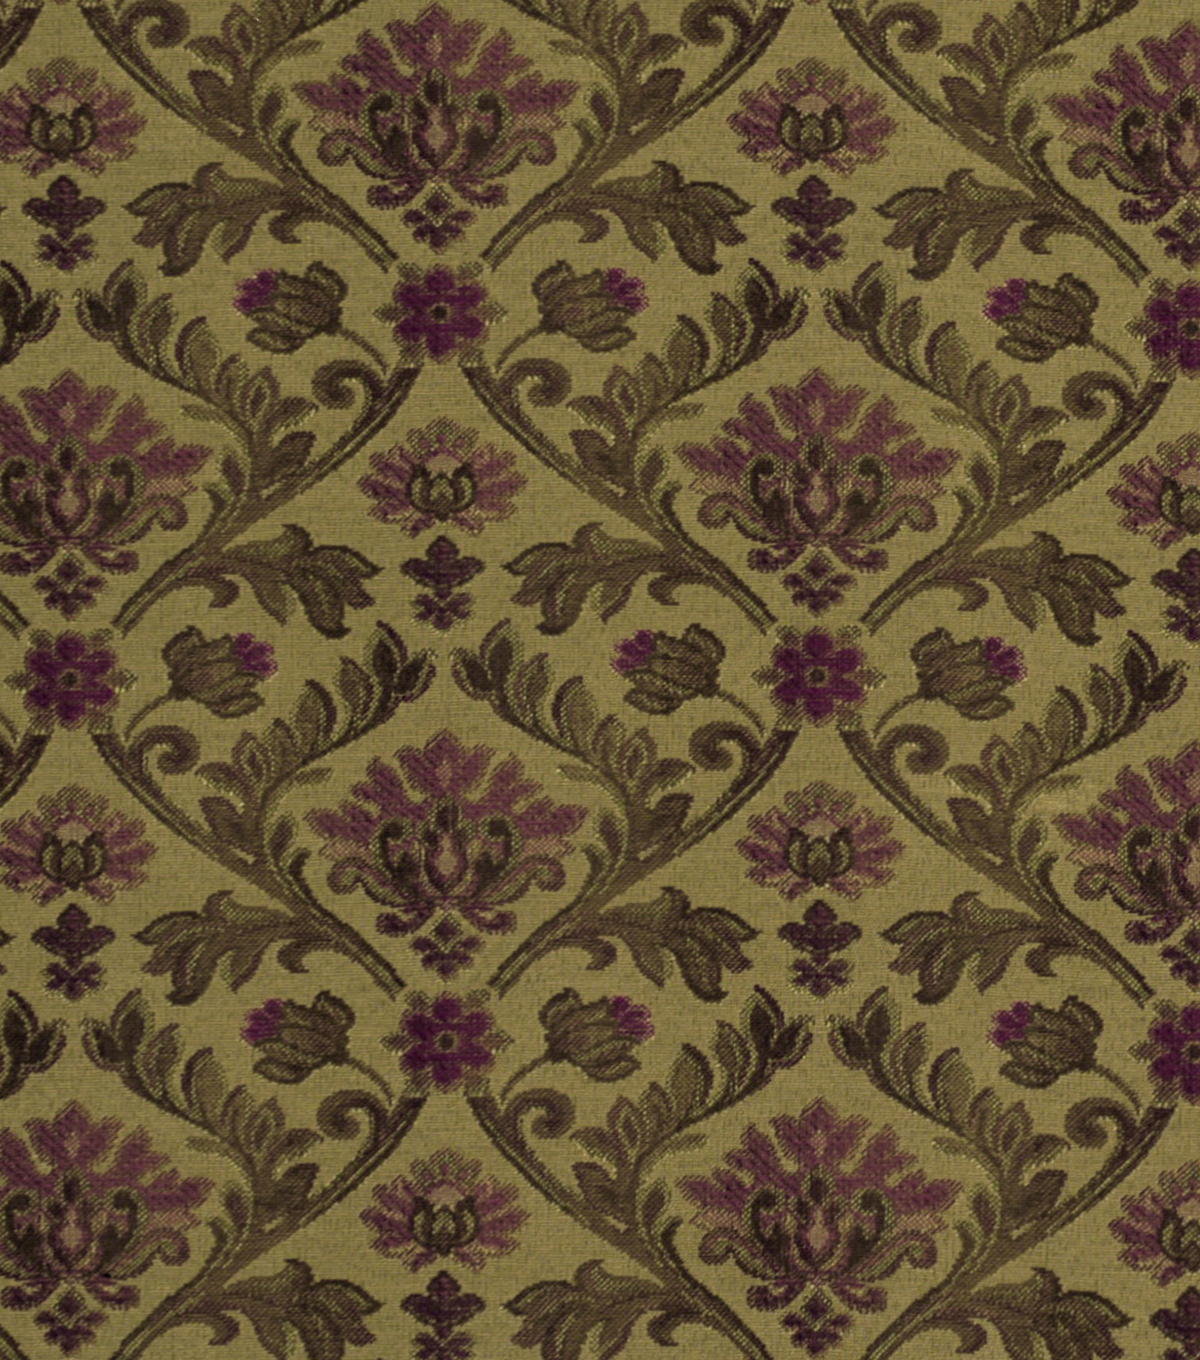 Robert Allen @ Home Multi-Purpose Decor Fabric 54\u0027\u0027-Delille on Antique